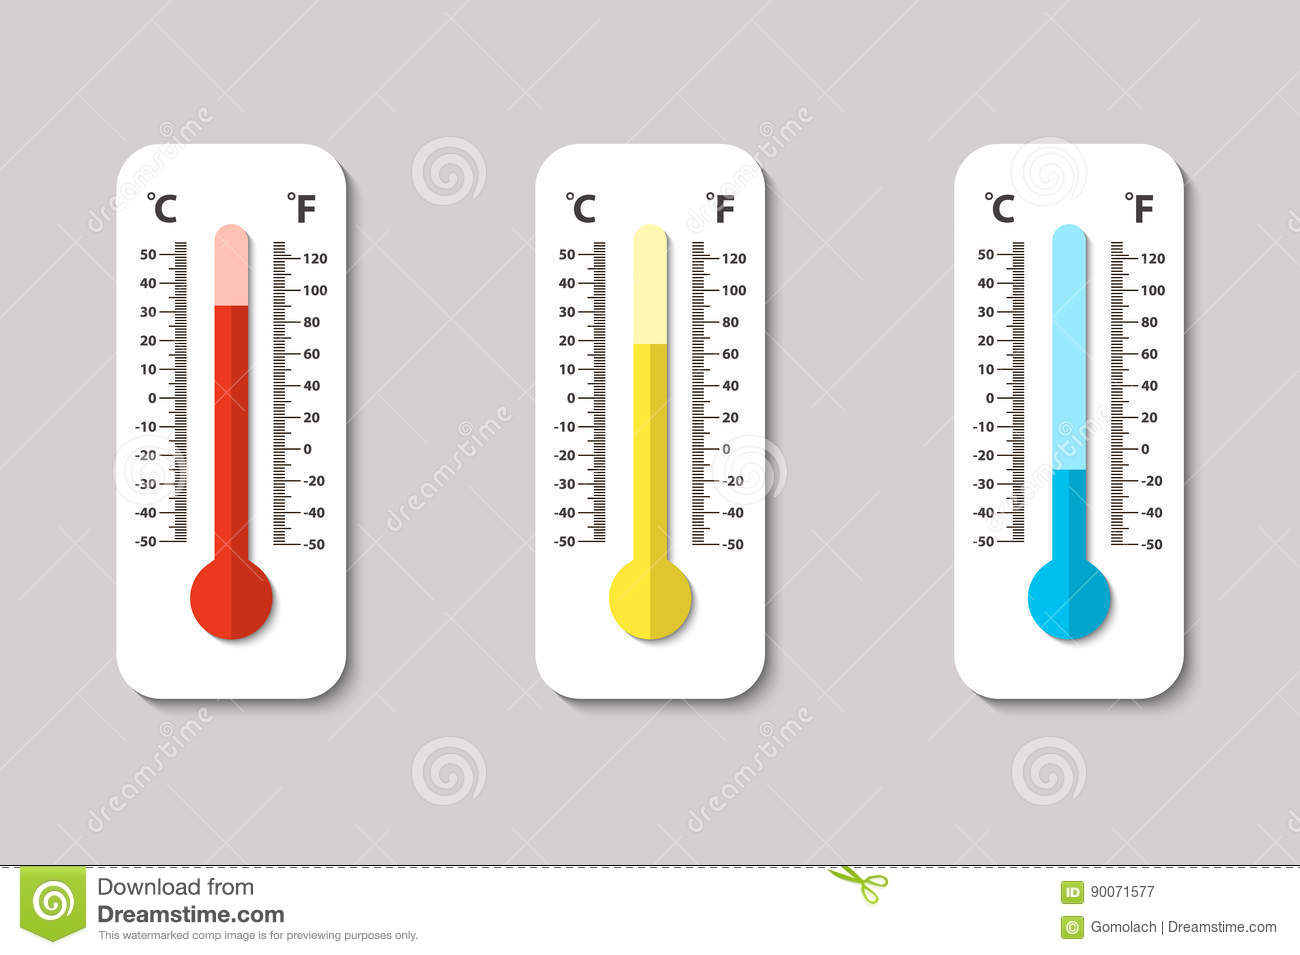 Vector Icons Of Celsius And Fahrenheit Meteorology ...